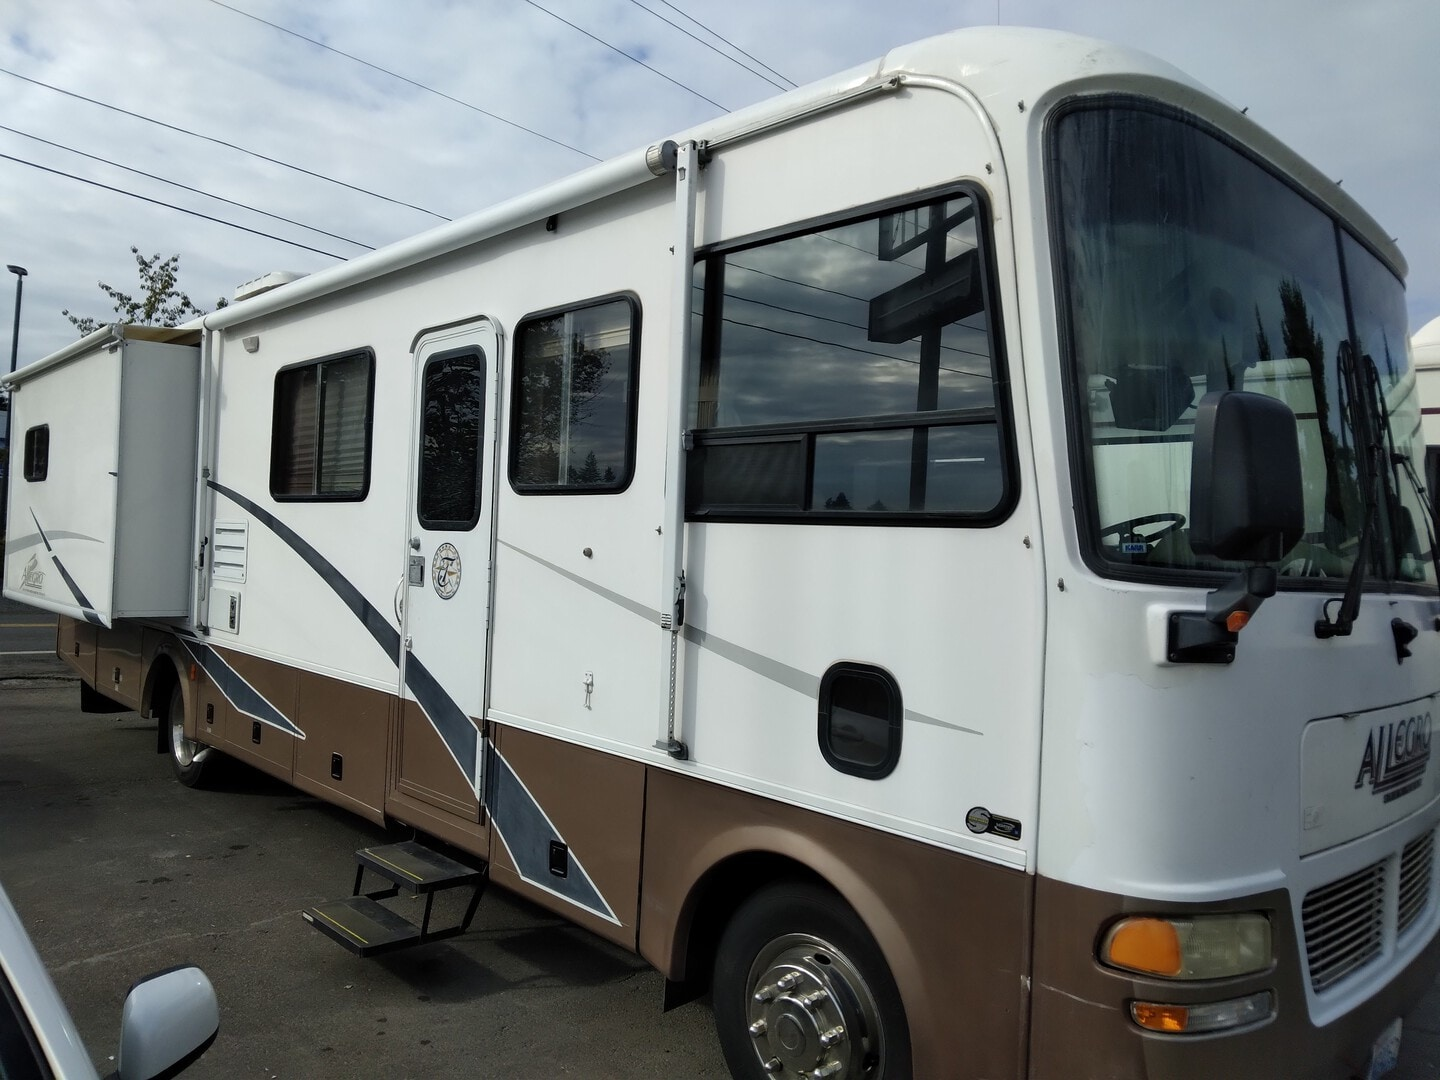 Used, 2003, Tiffin Motorhomes, ALLEGRO, RV - Class A